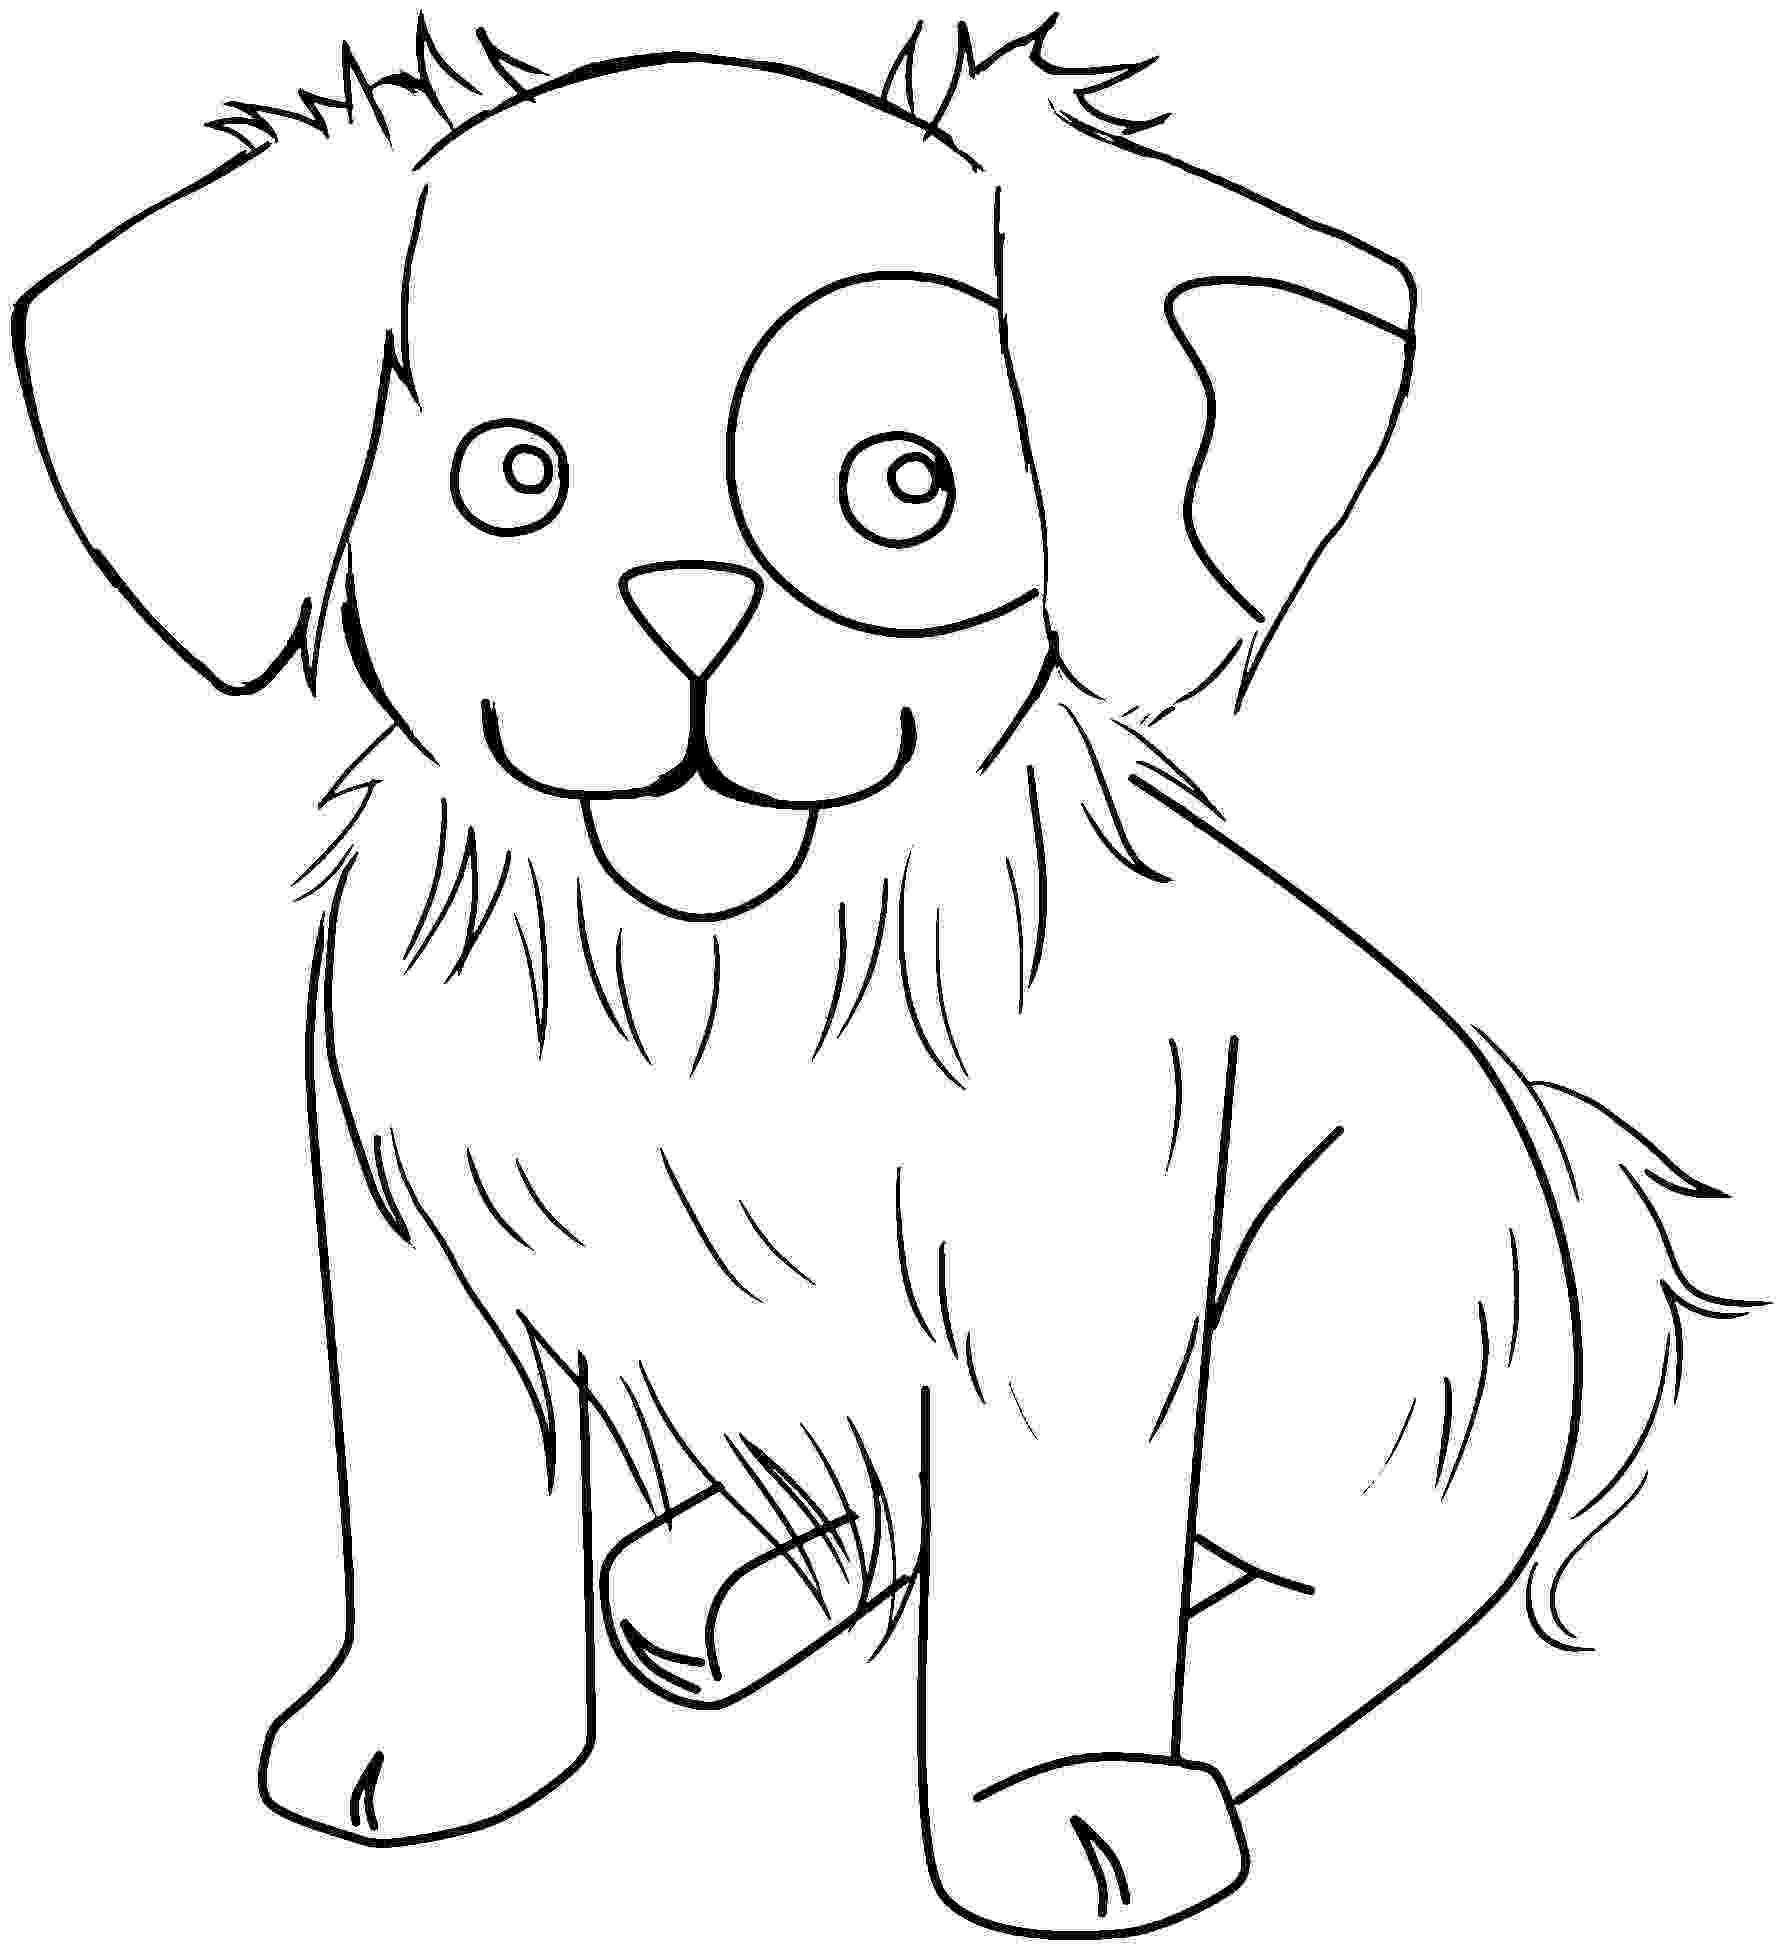 winter animals coloring pages animals in winter printable worksheets sketch coloring page animals coloring pages winter